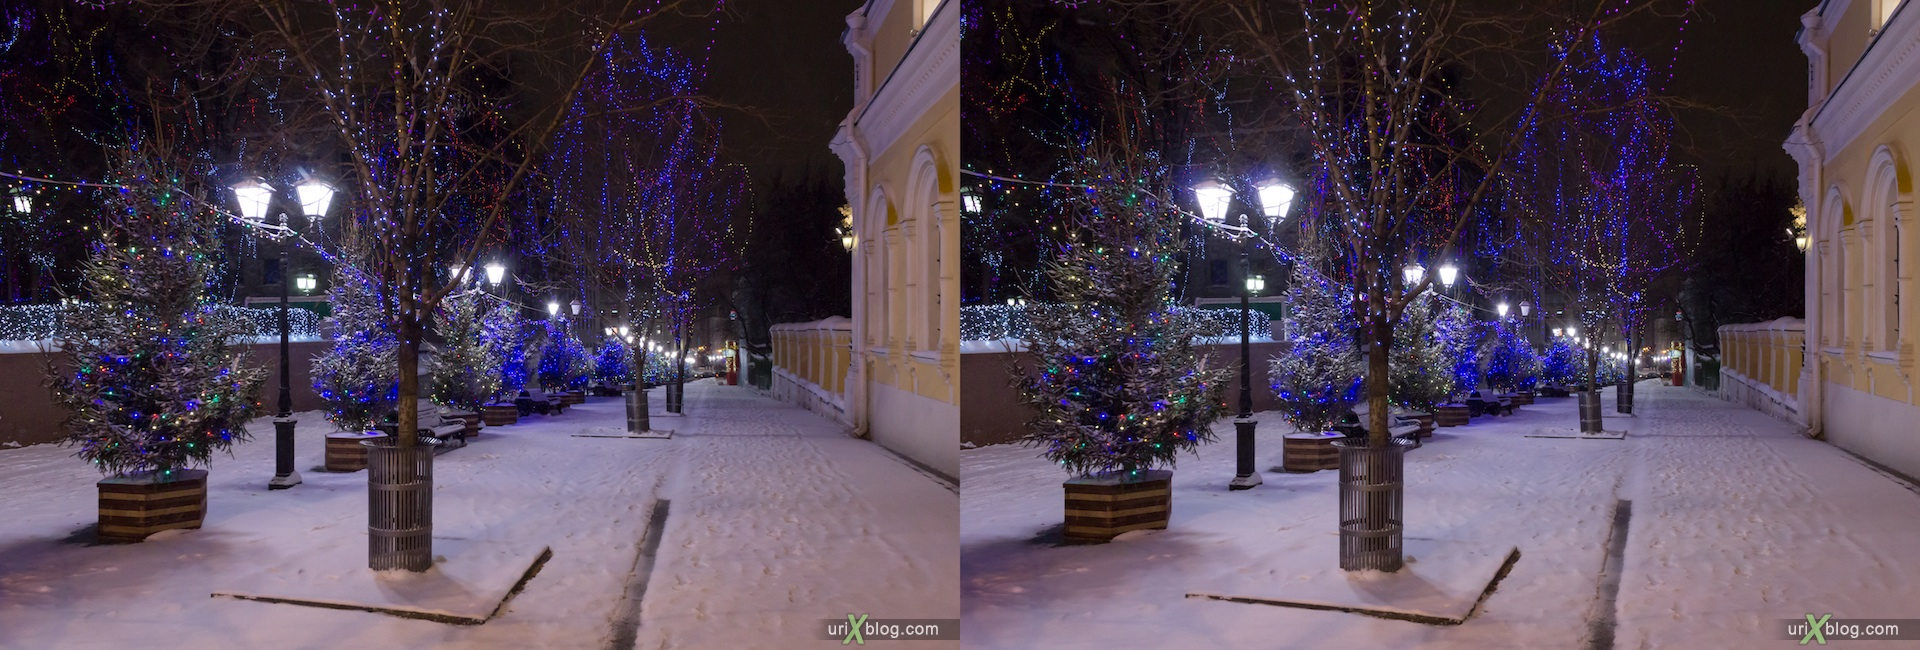 2013, Moscow, Tverskaja square, night, snow, winter, new year, christmass tree, city, Russia, 3D, stereo pair, cross-eyed, crossview, cross view stereo pair